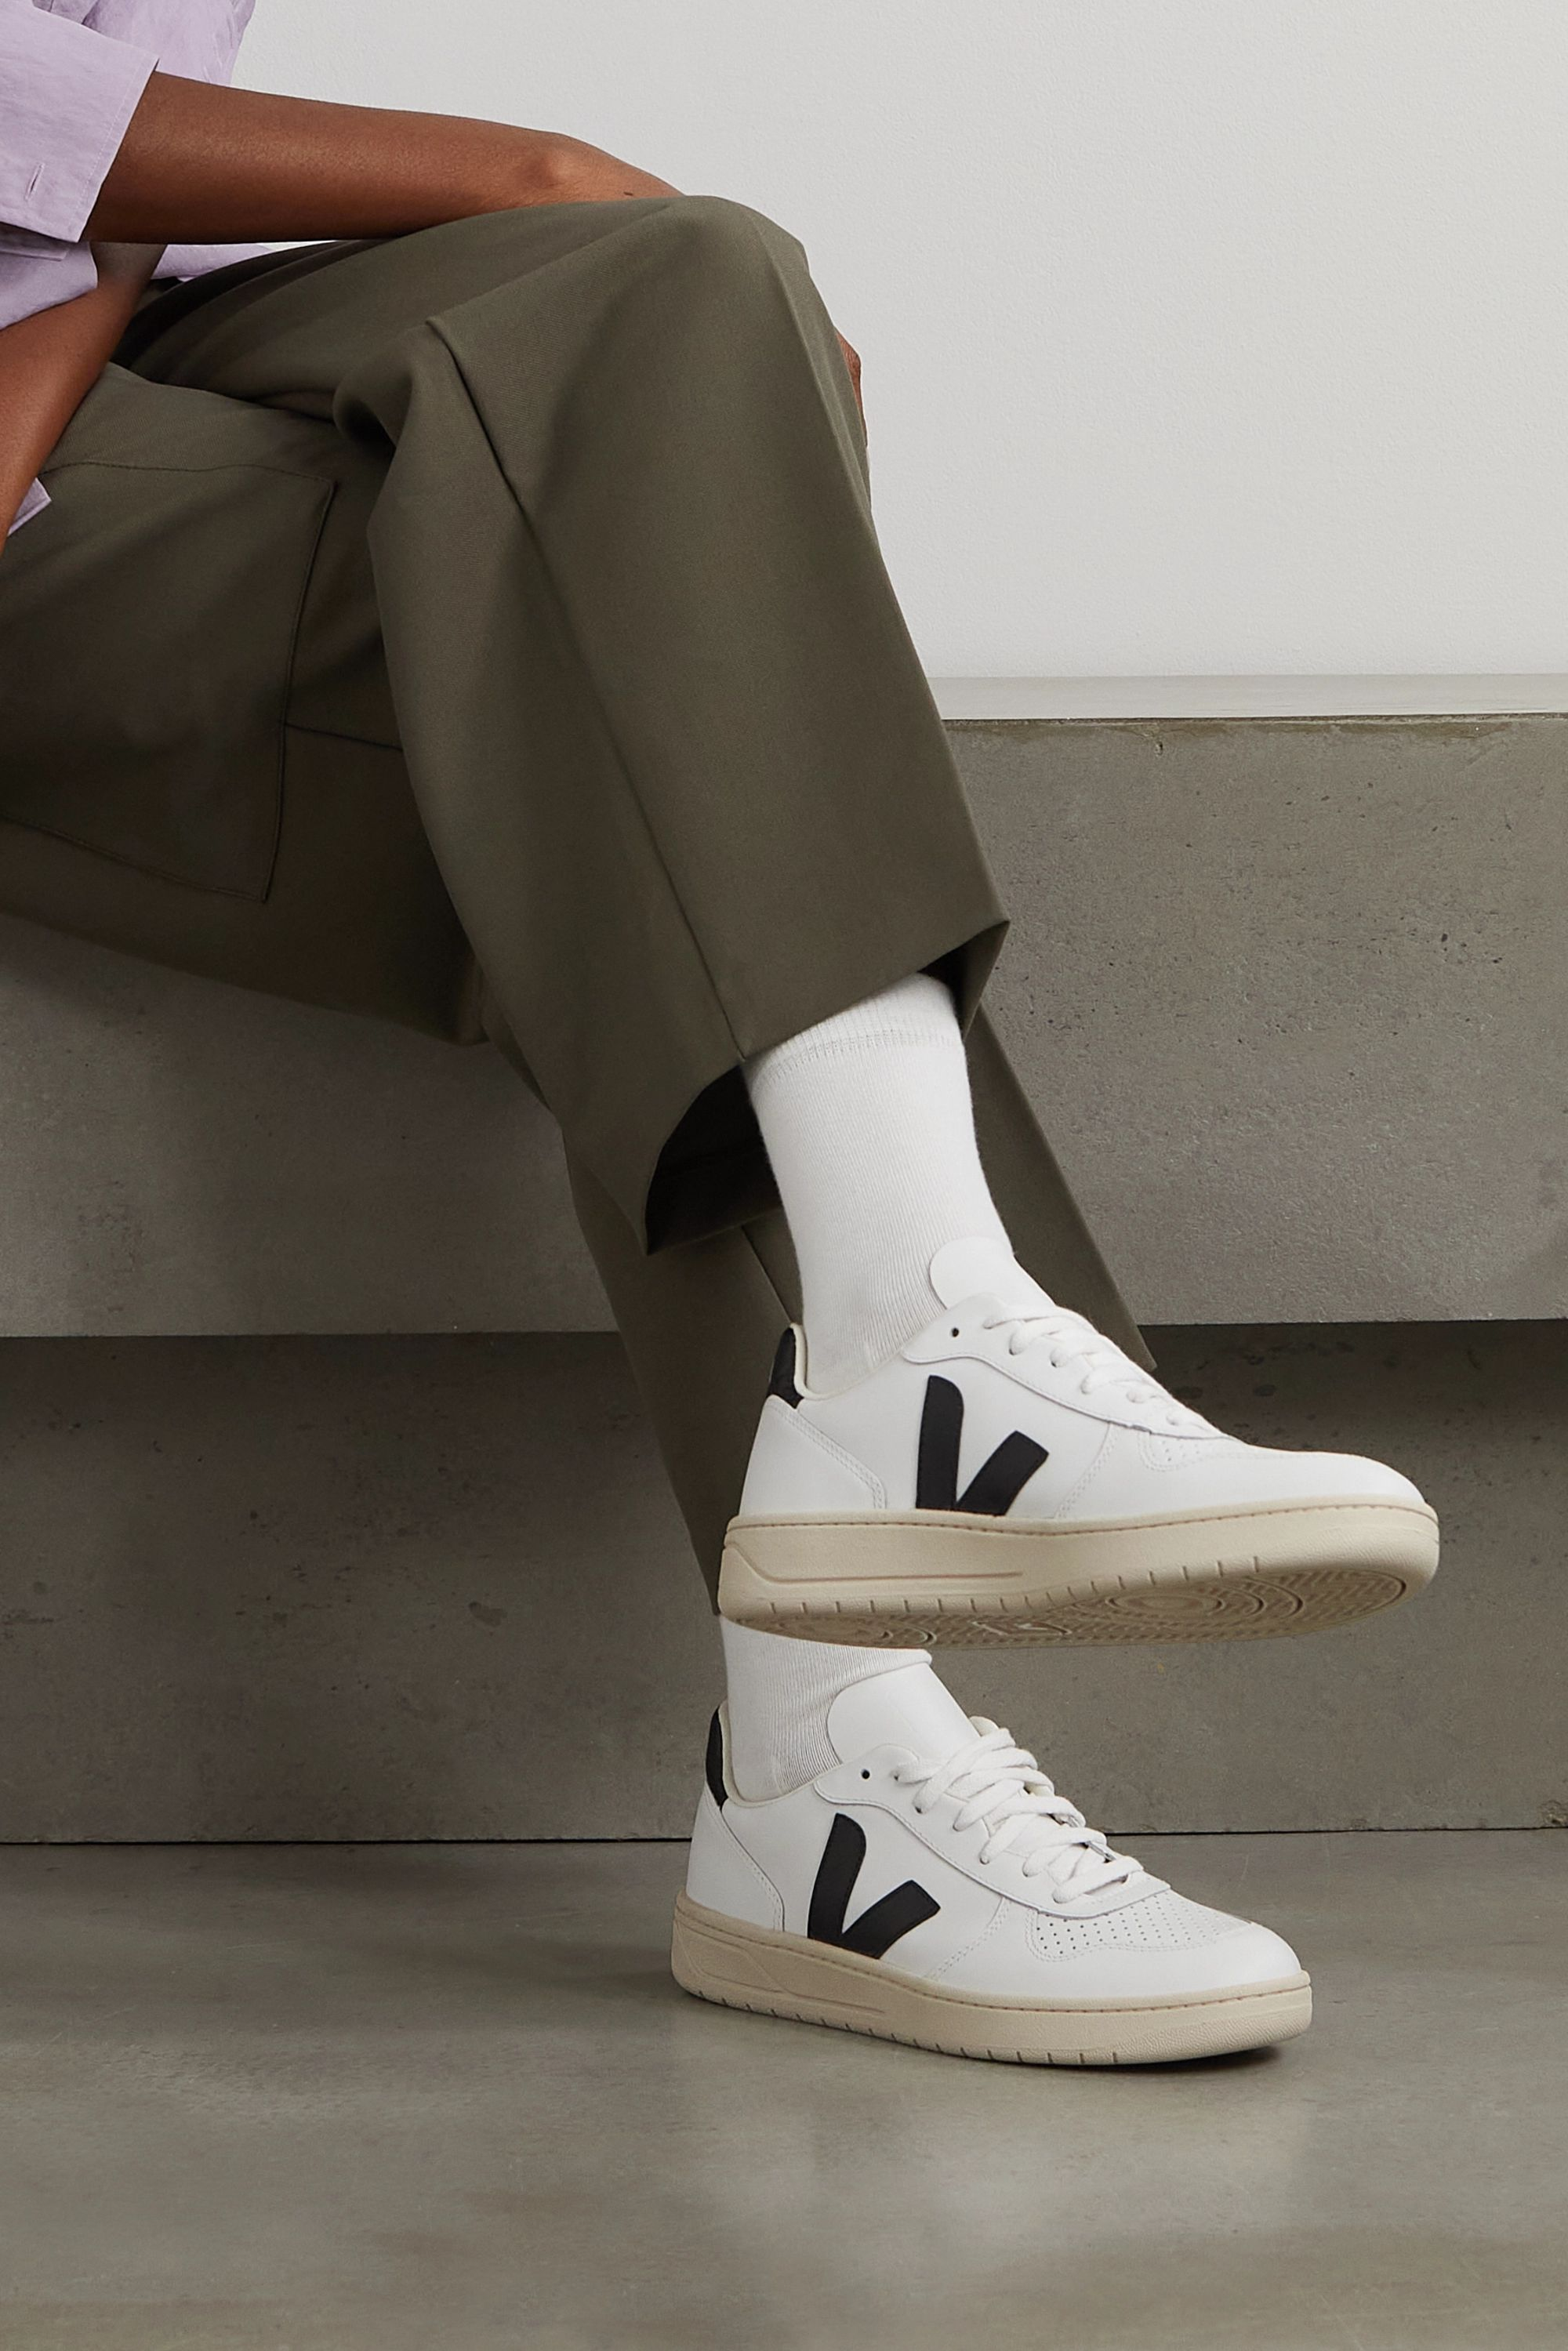 NET SUSTAIN V-10 leather sneakers